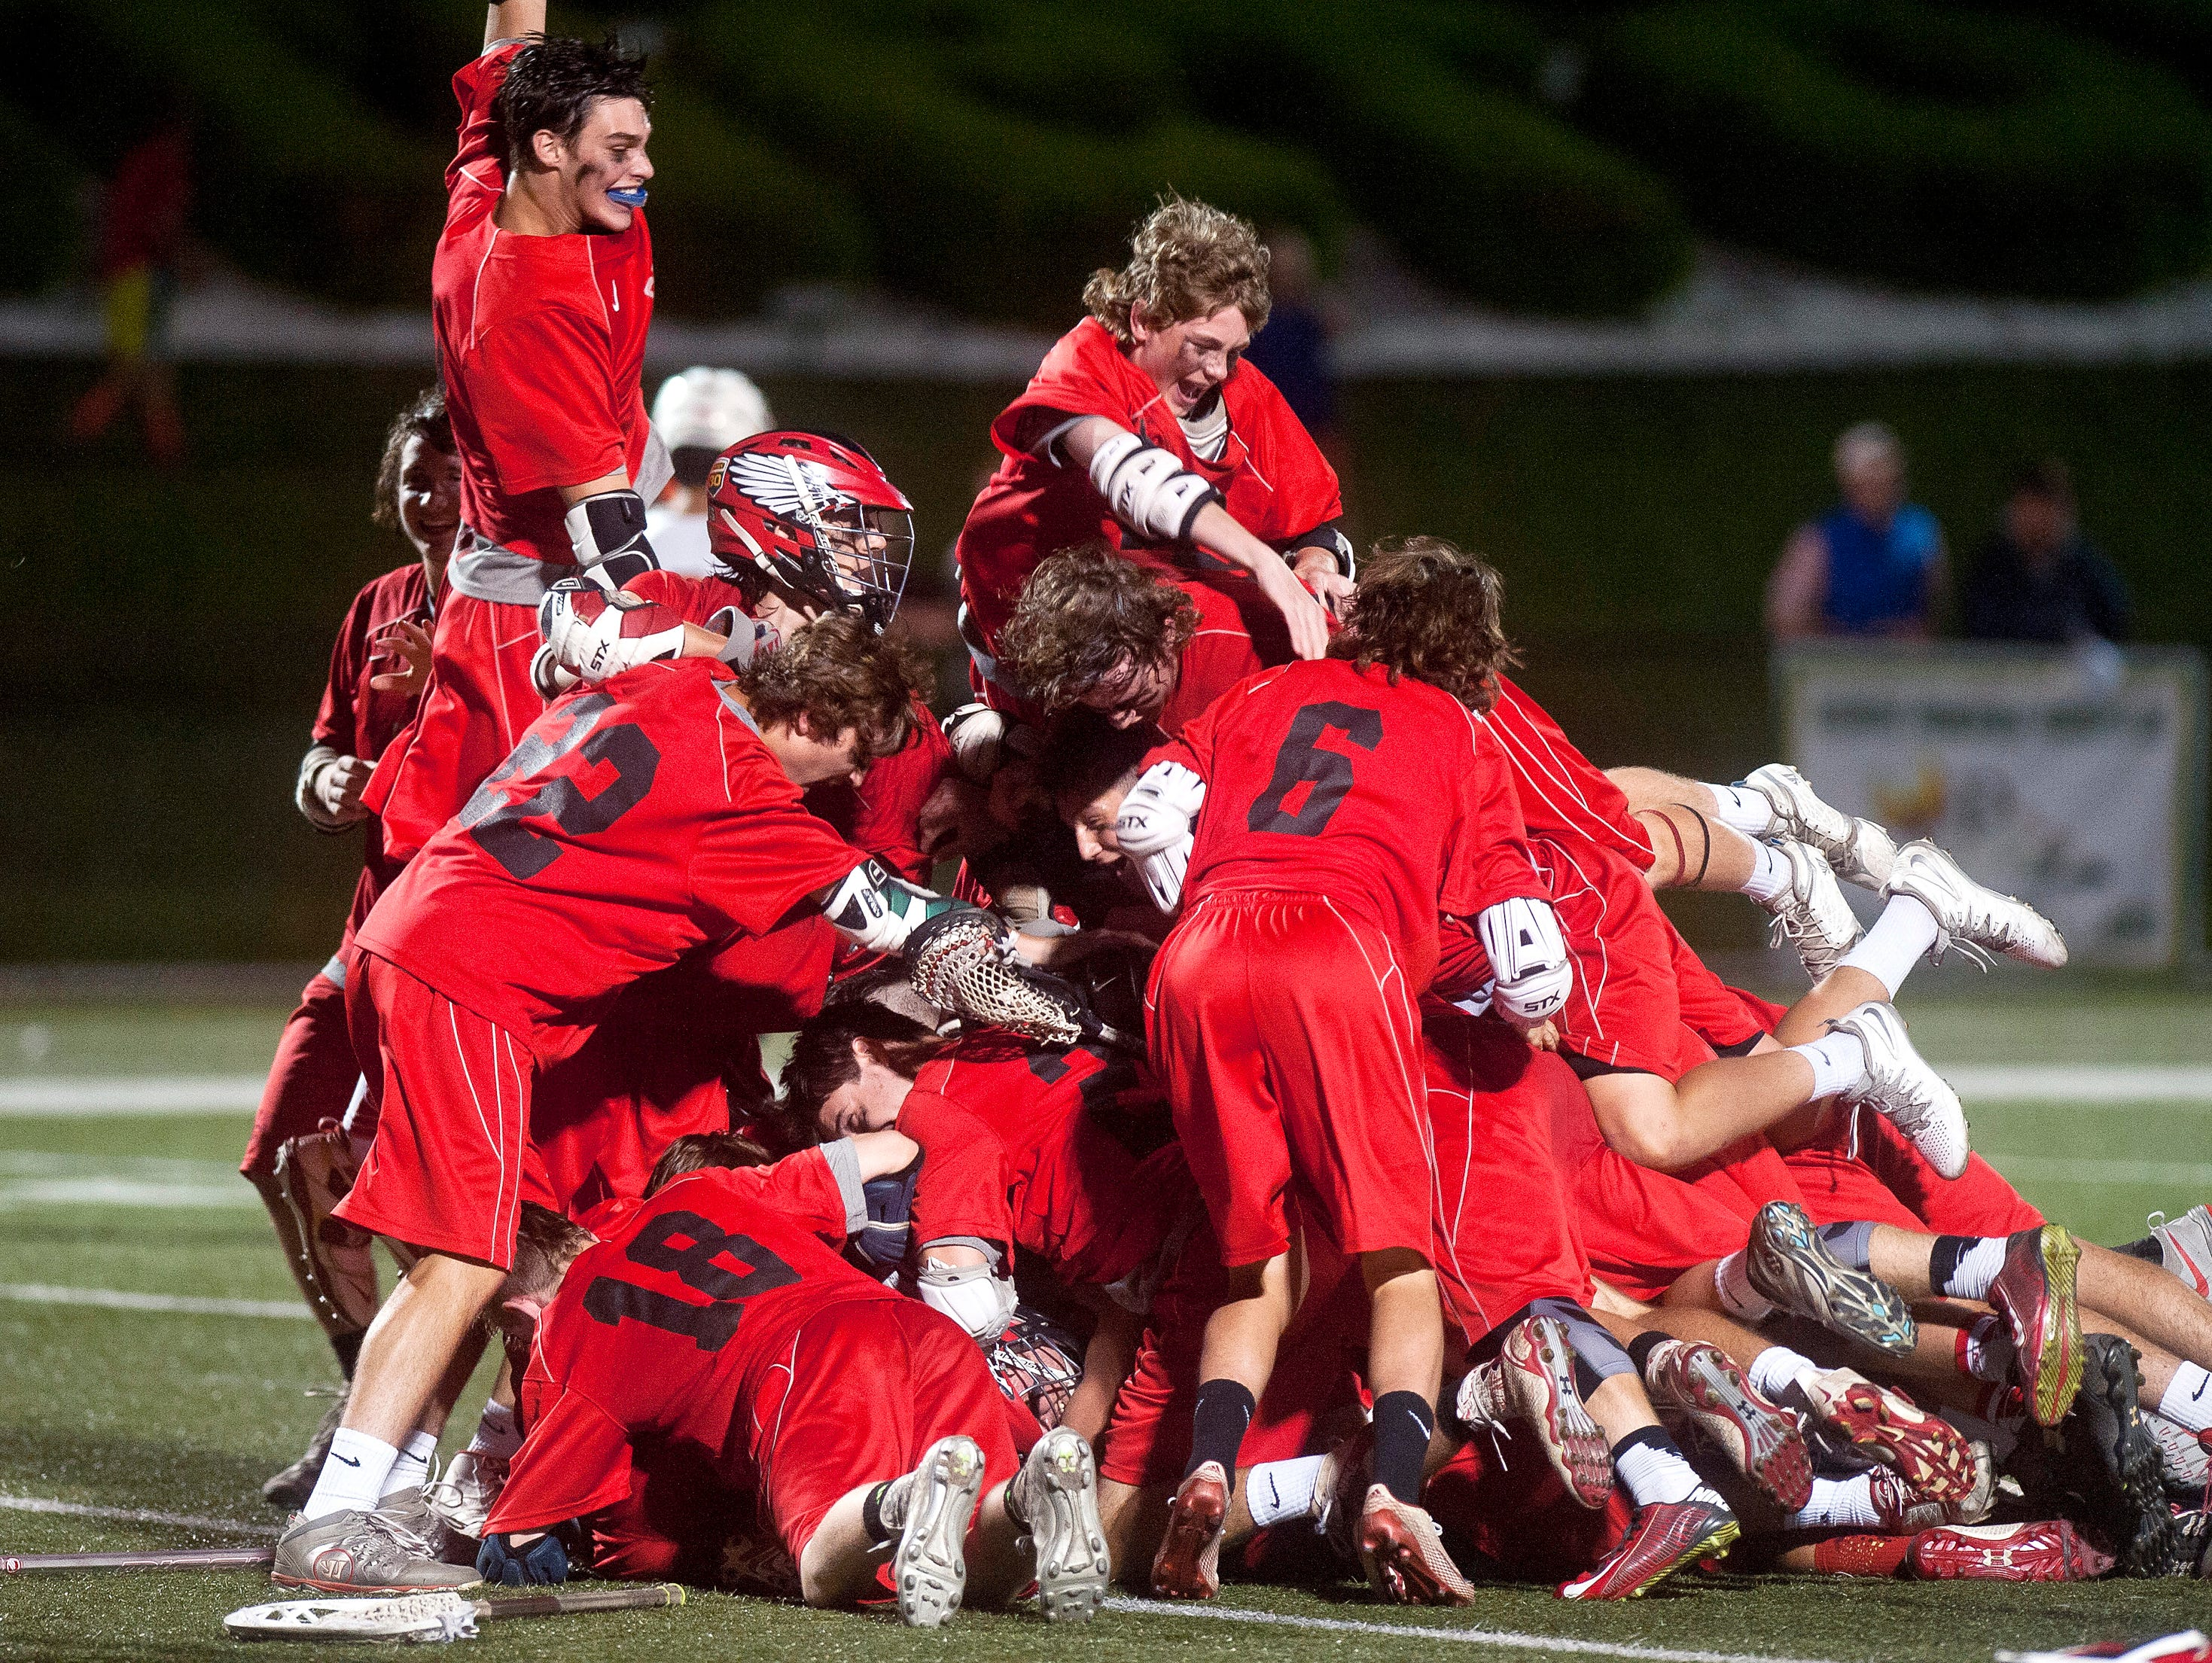 Champlain Valley players leap into a celebratory pile after their 11-10 victory over Middlebury in the Division I boys lacrosse championship game Thursday night at Castleton State College.